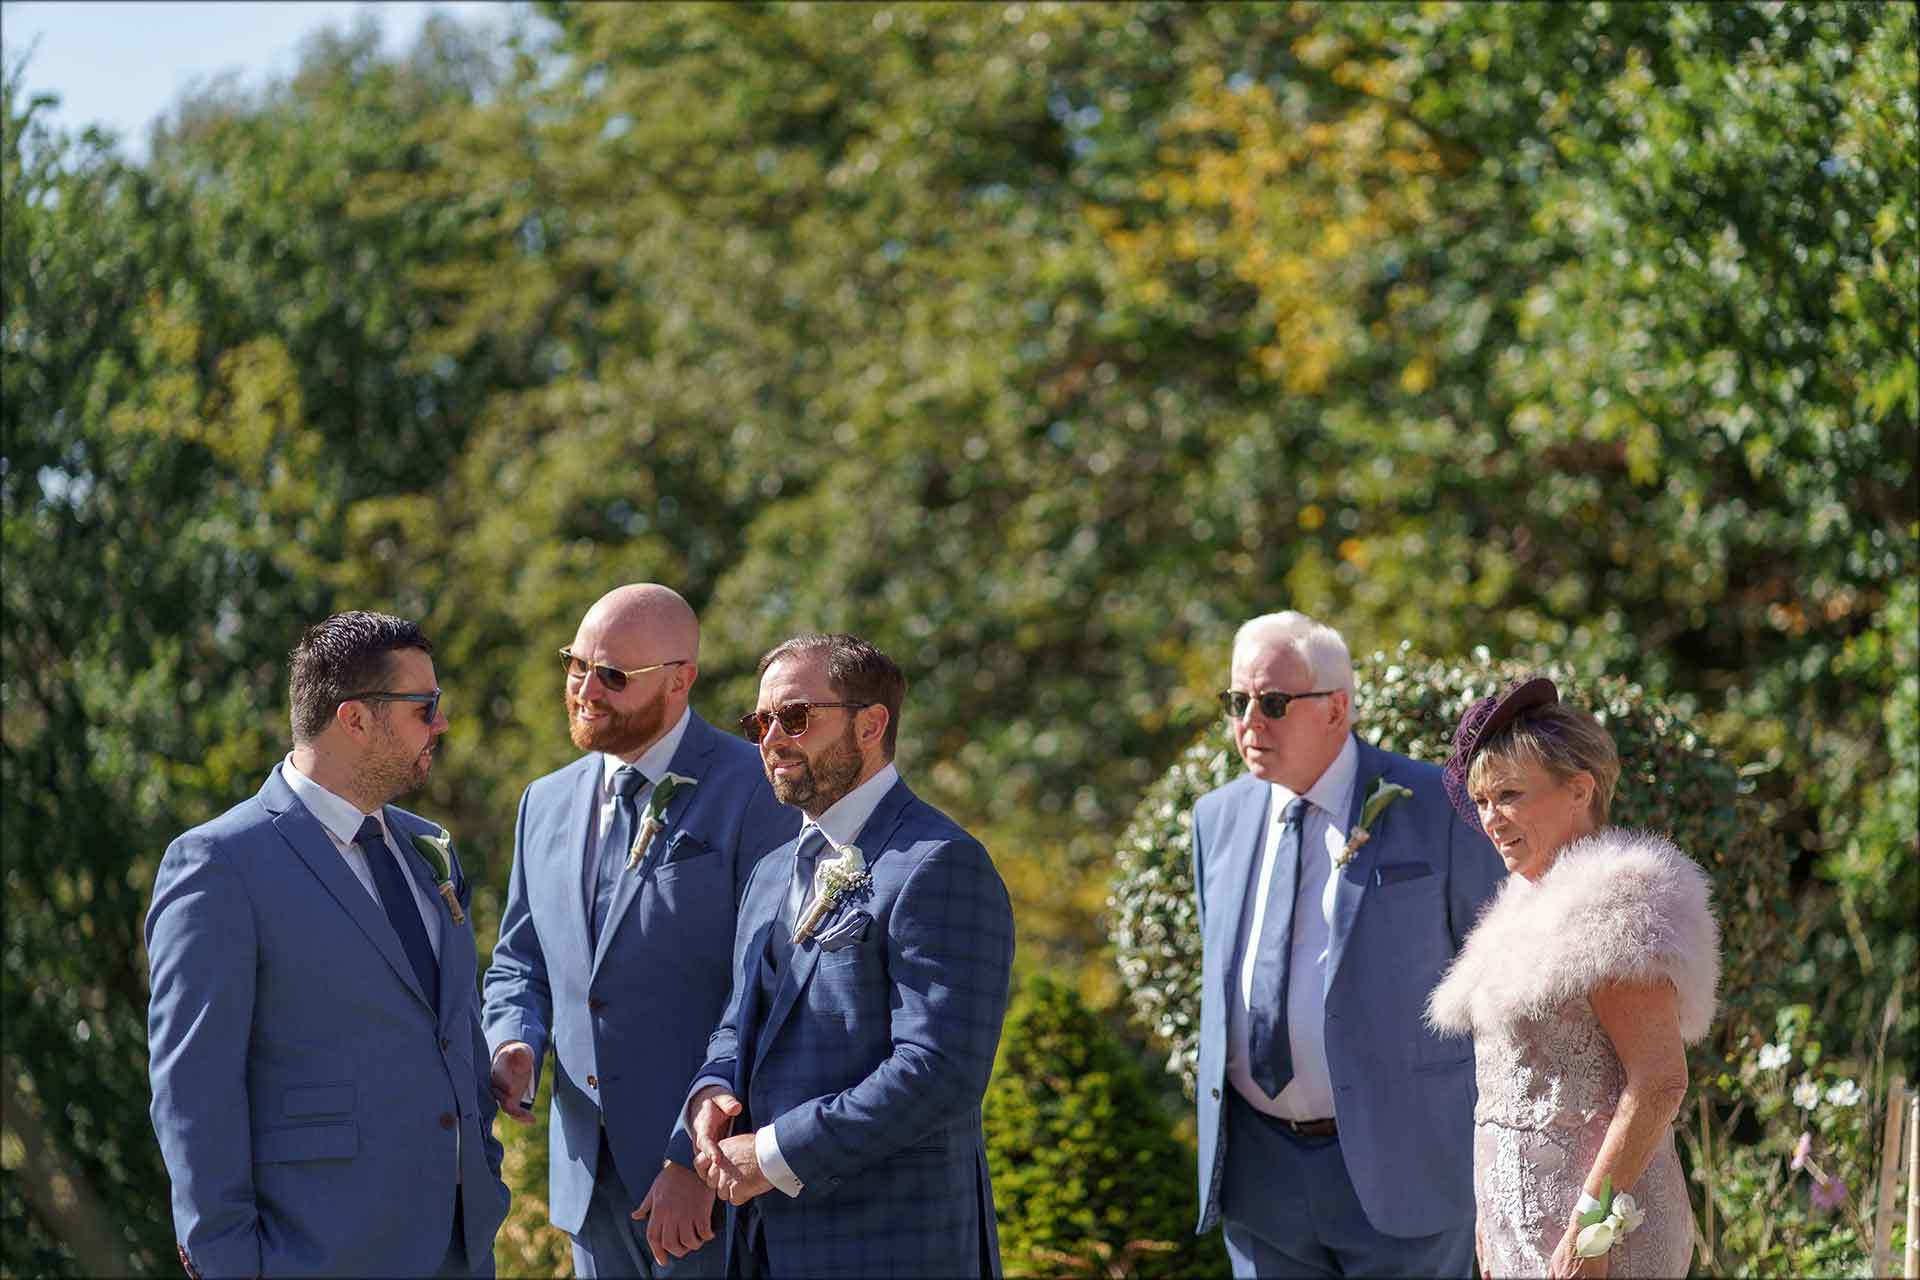 Groom and groomsmen wait for brides arrival